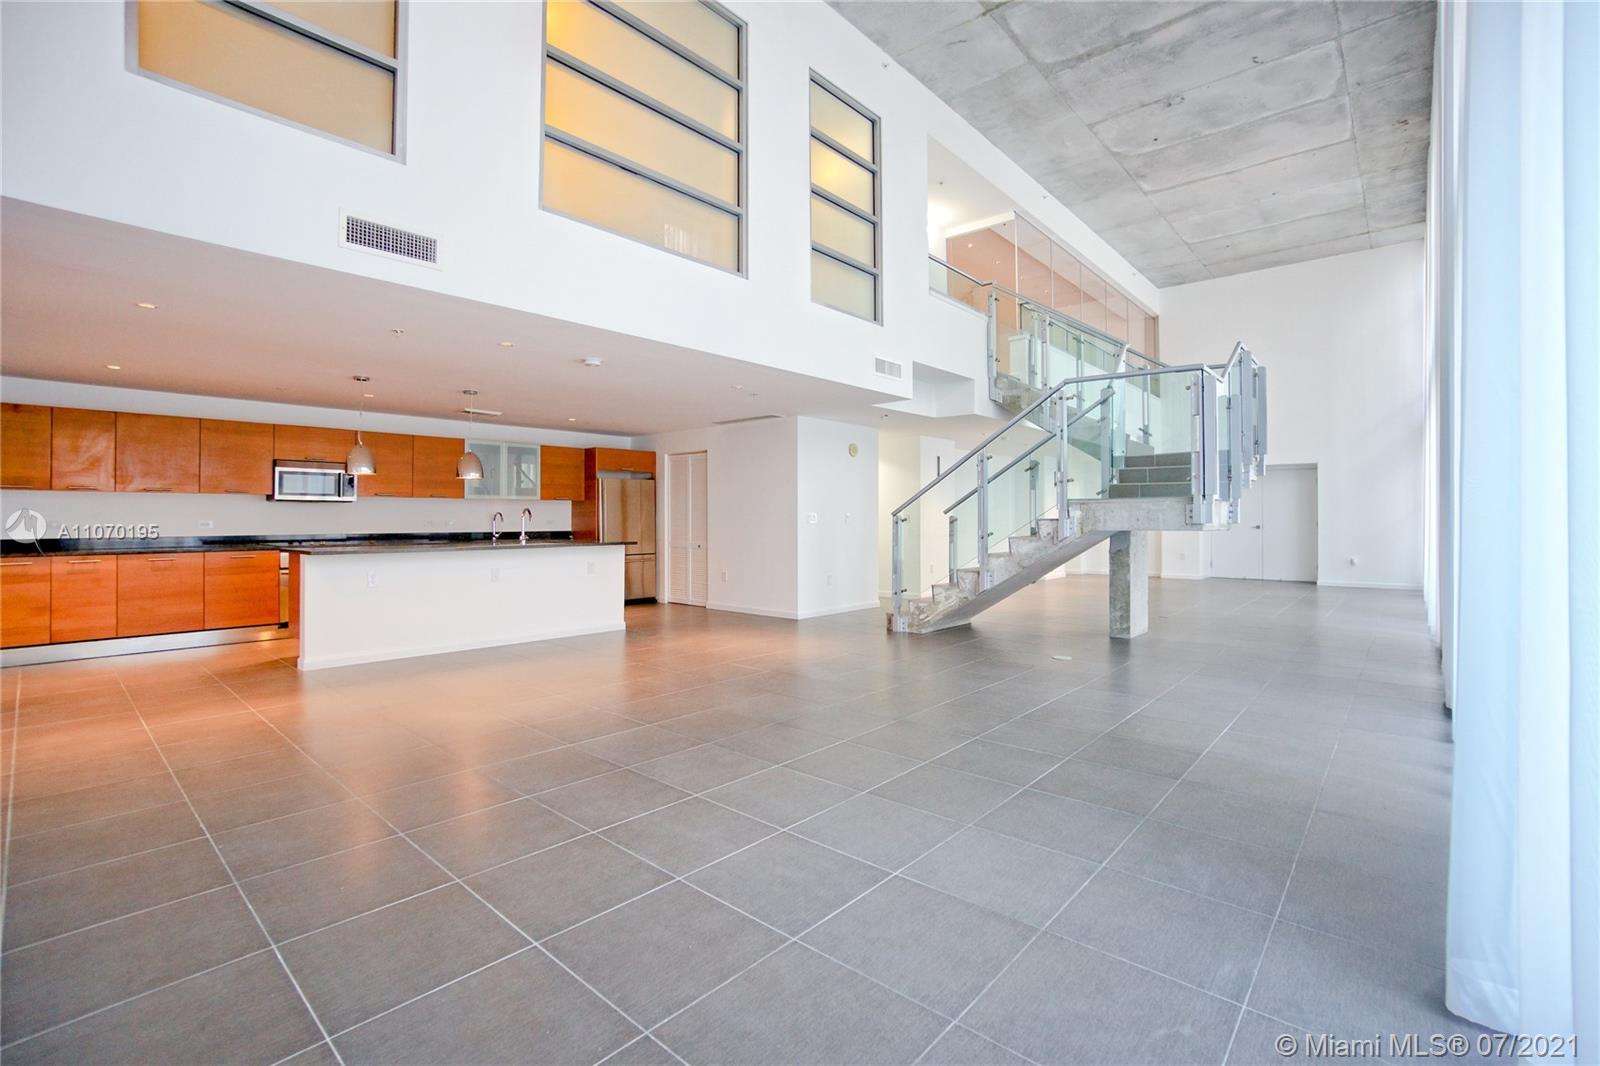 HUGE 5,462 SqFt Loft-Style 2-story apartment in the heart of Midtown. Unique unit, can be use as a l